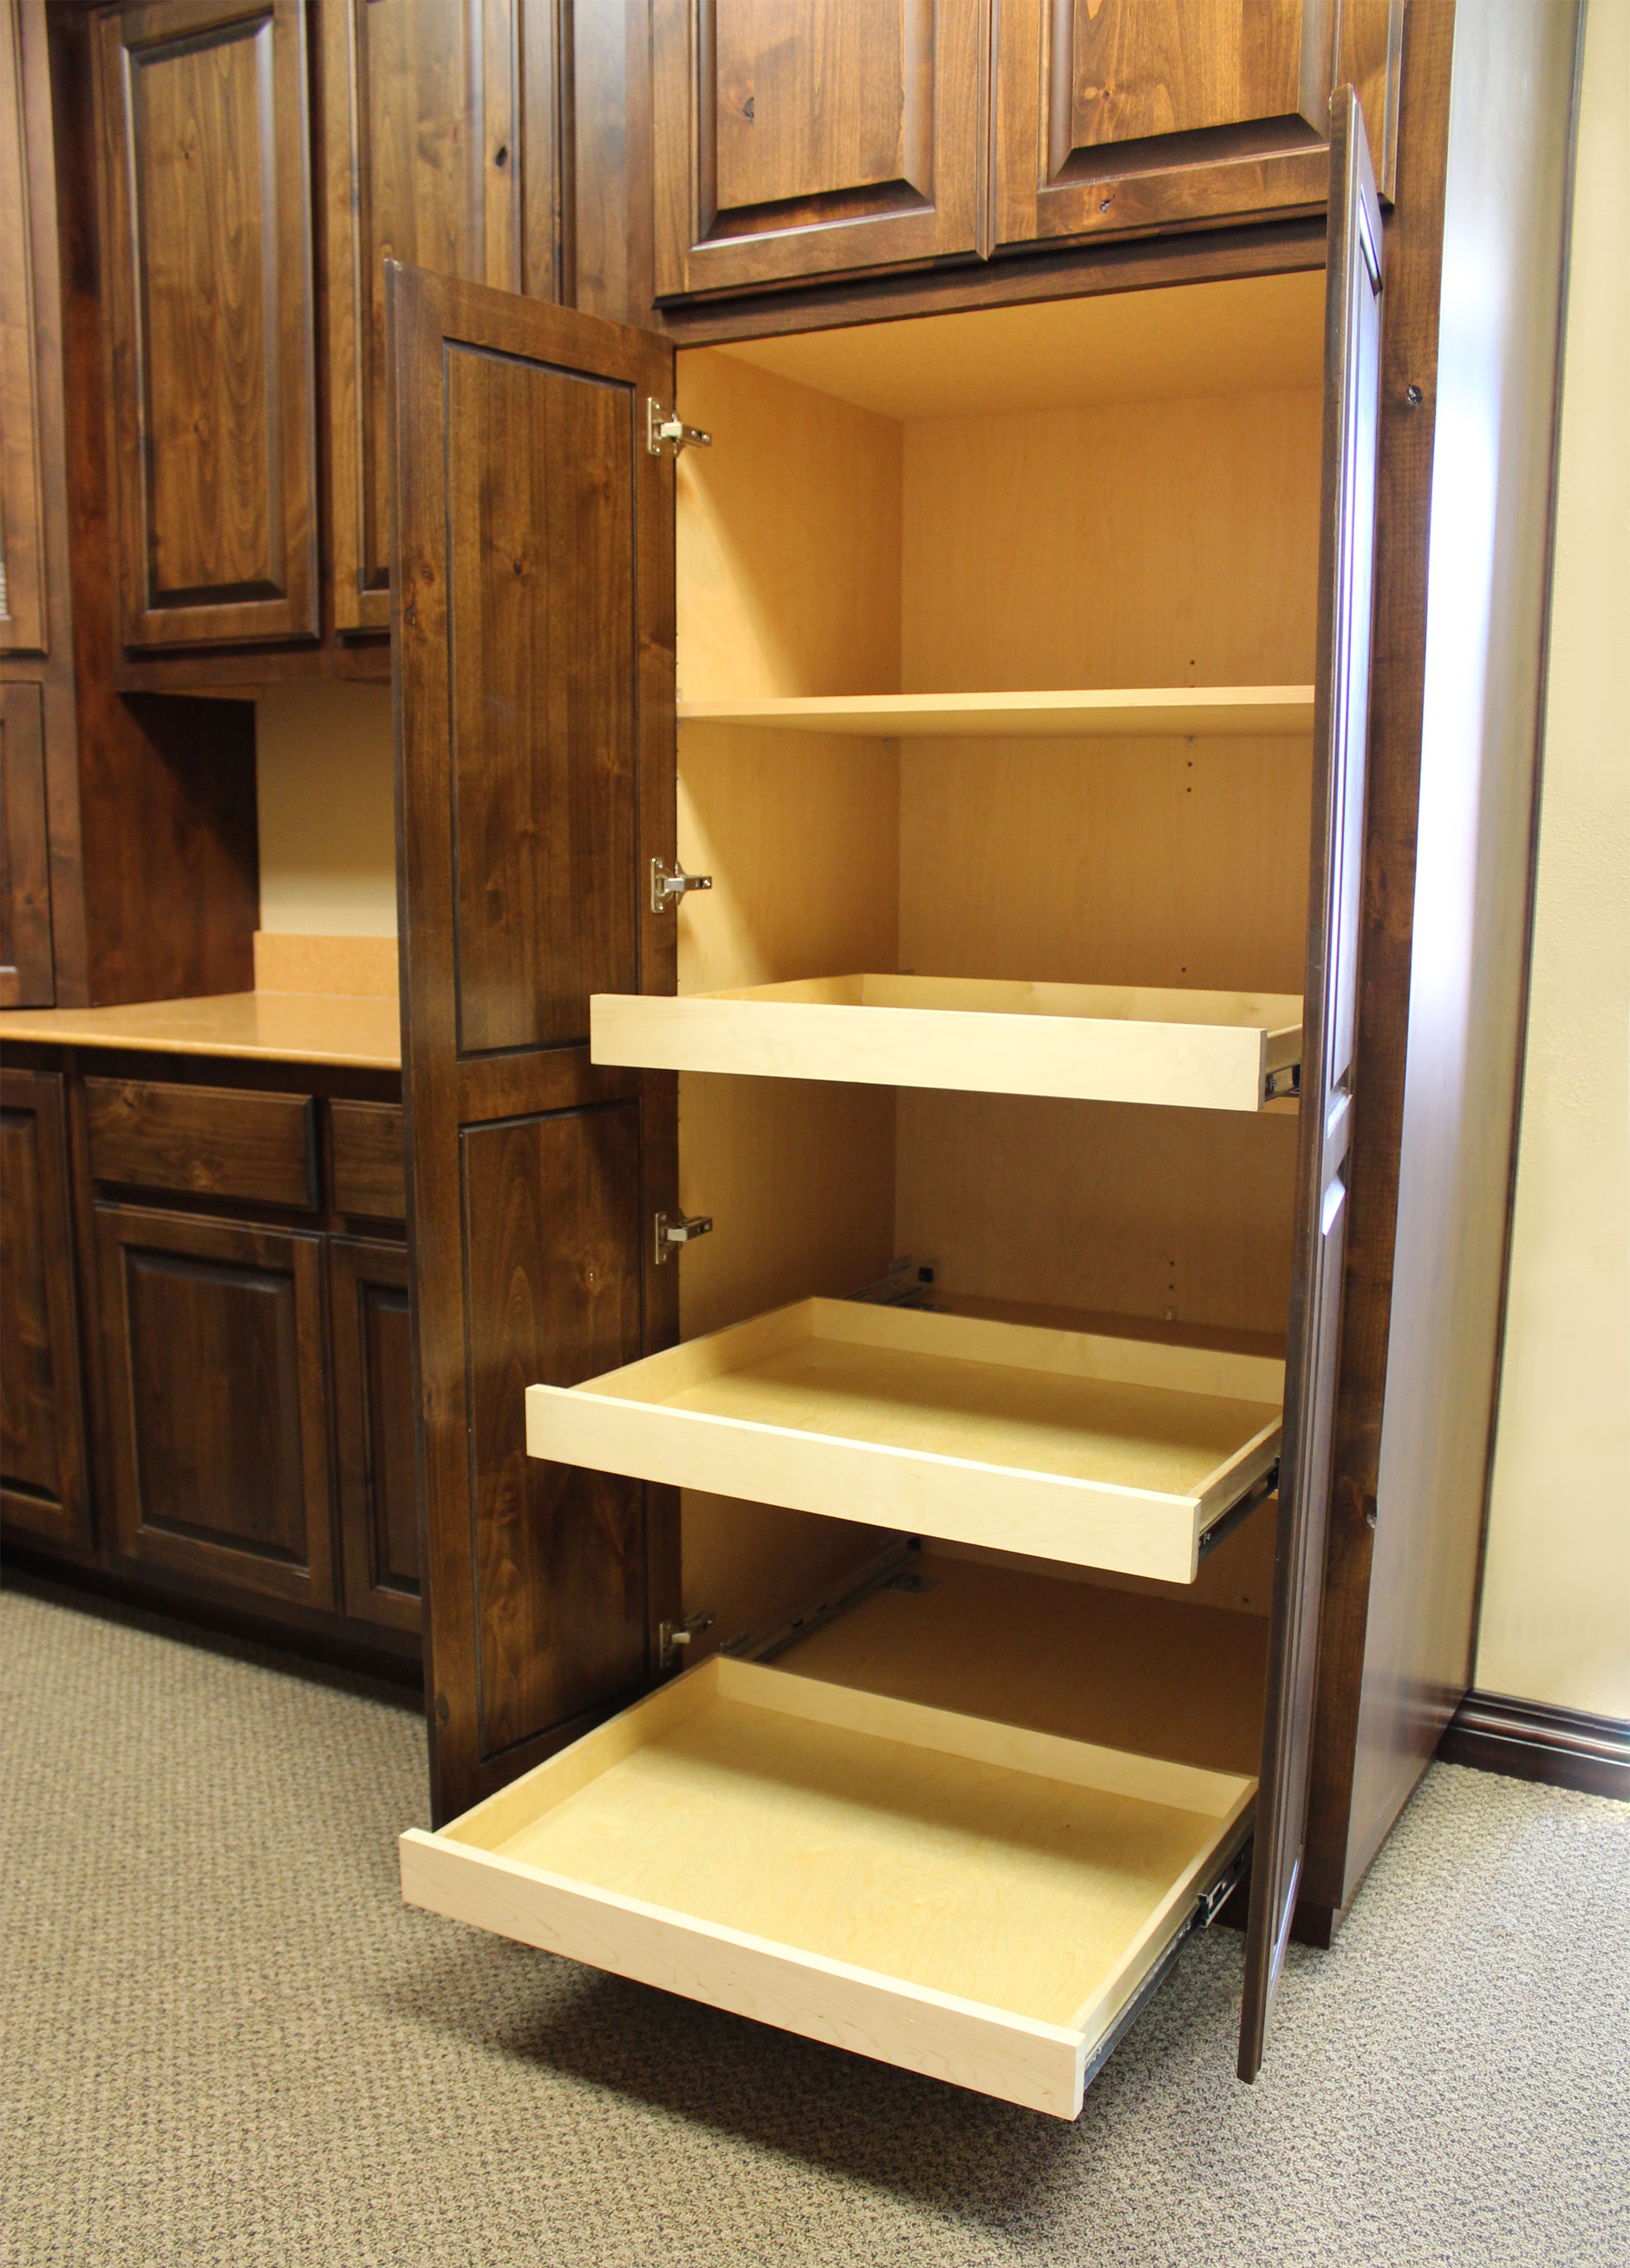 pull out shelves pull out kitchen cabinet pull out shelfves for kitchen cabinets